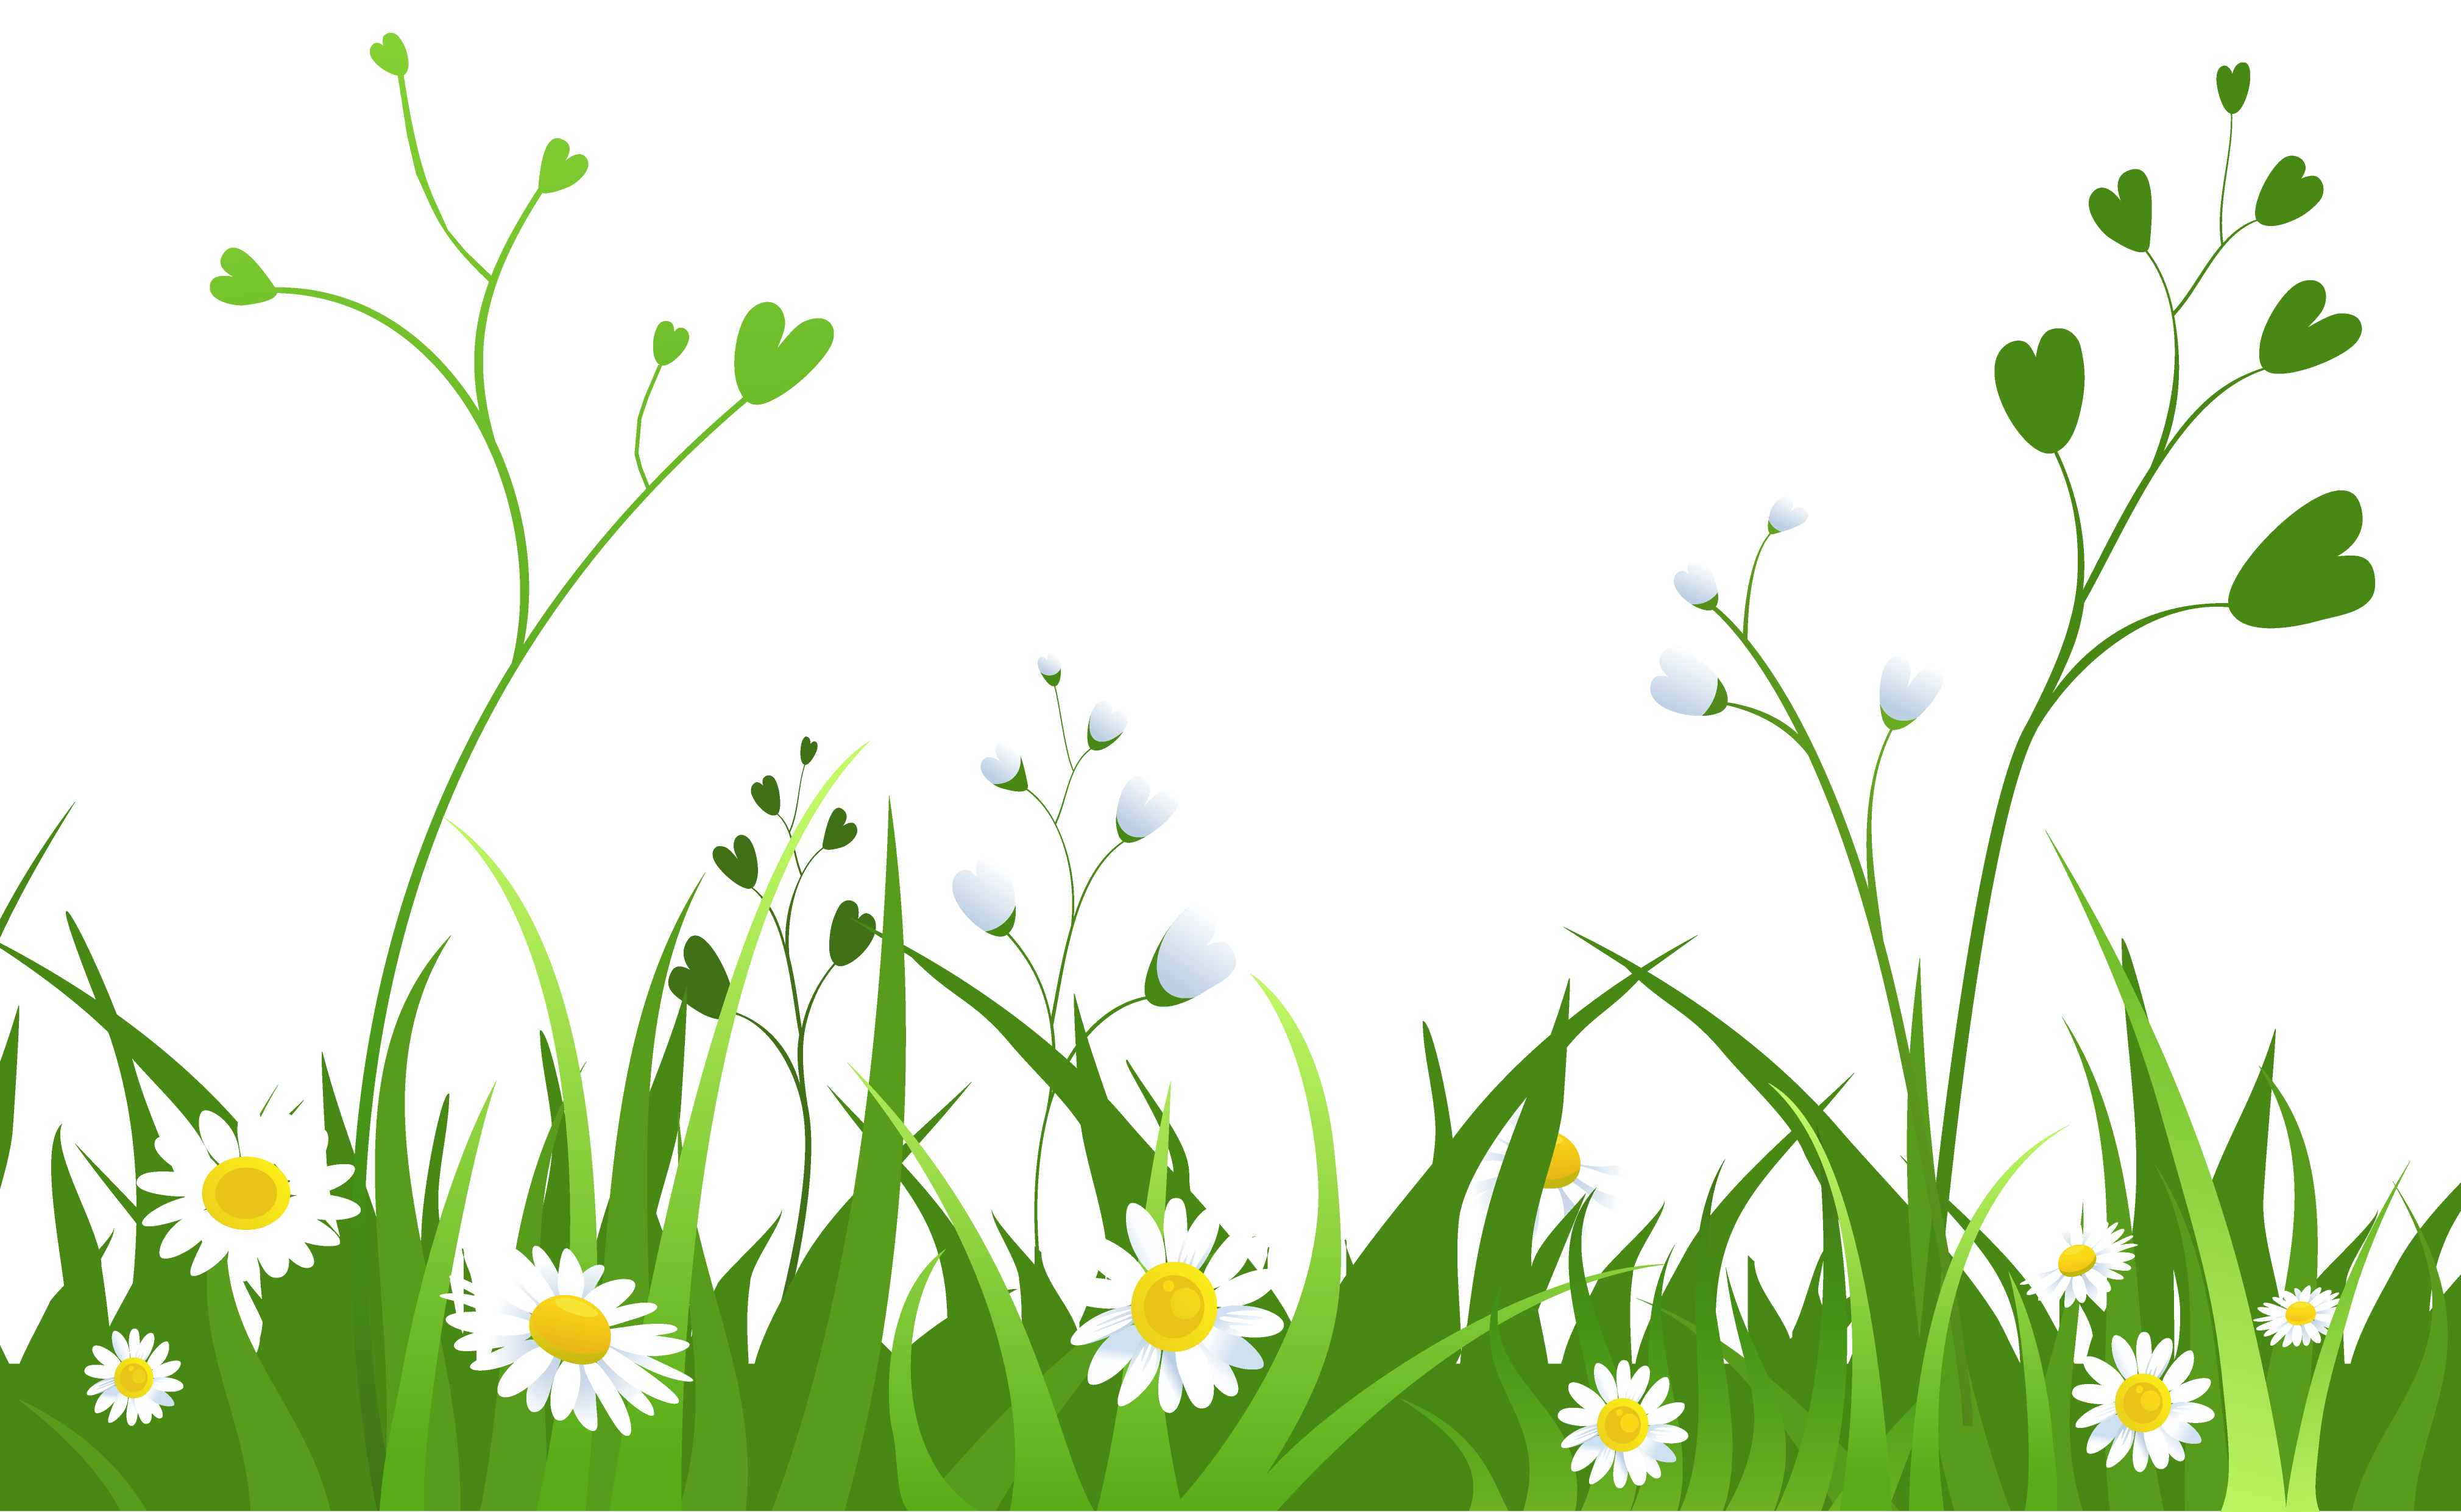 Daisies with grass png. Fight clipart vector